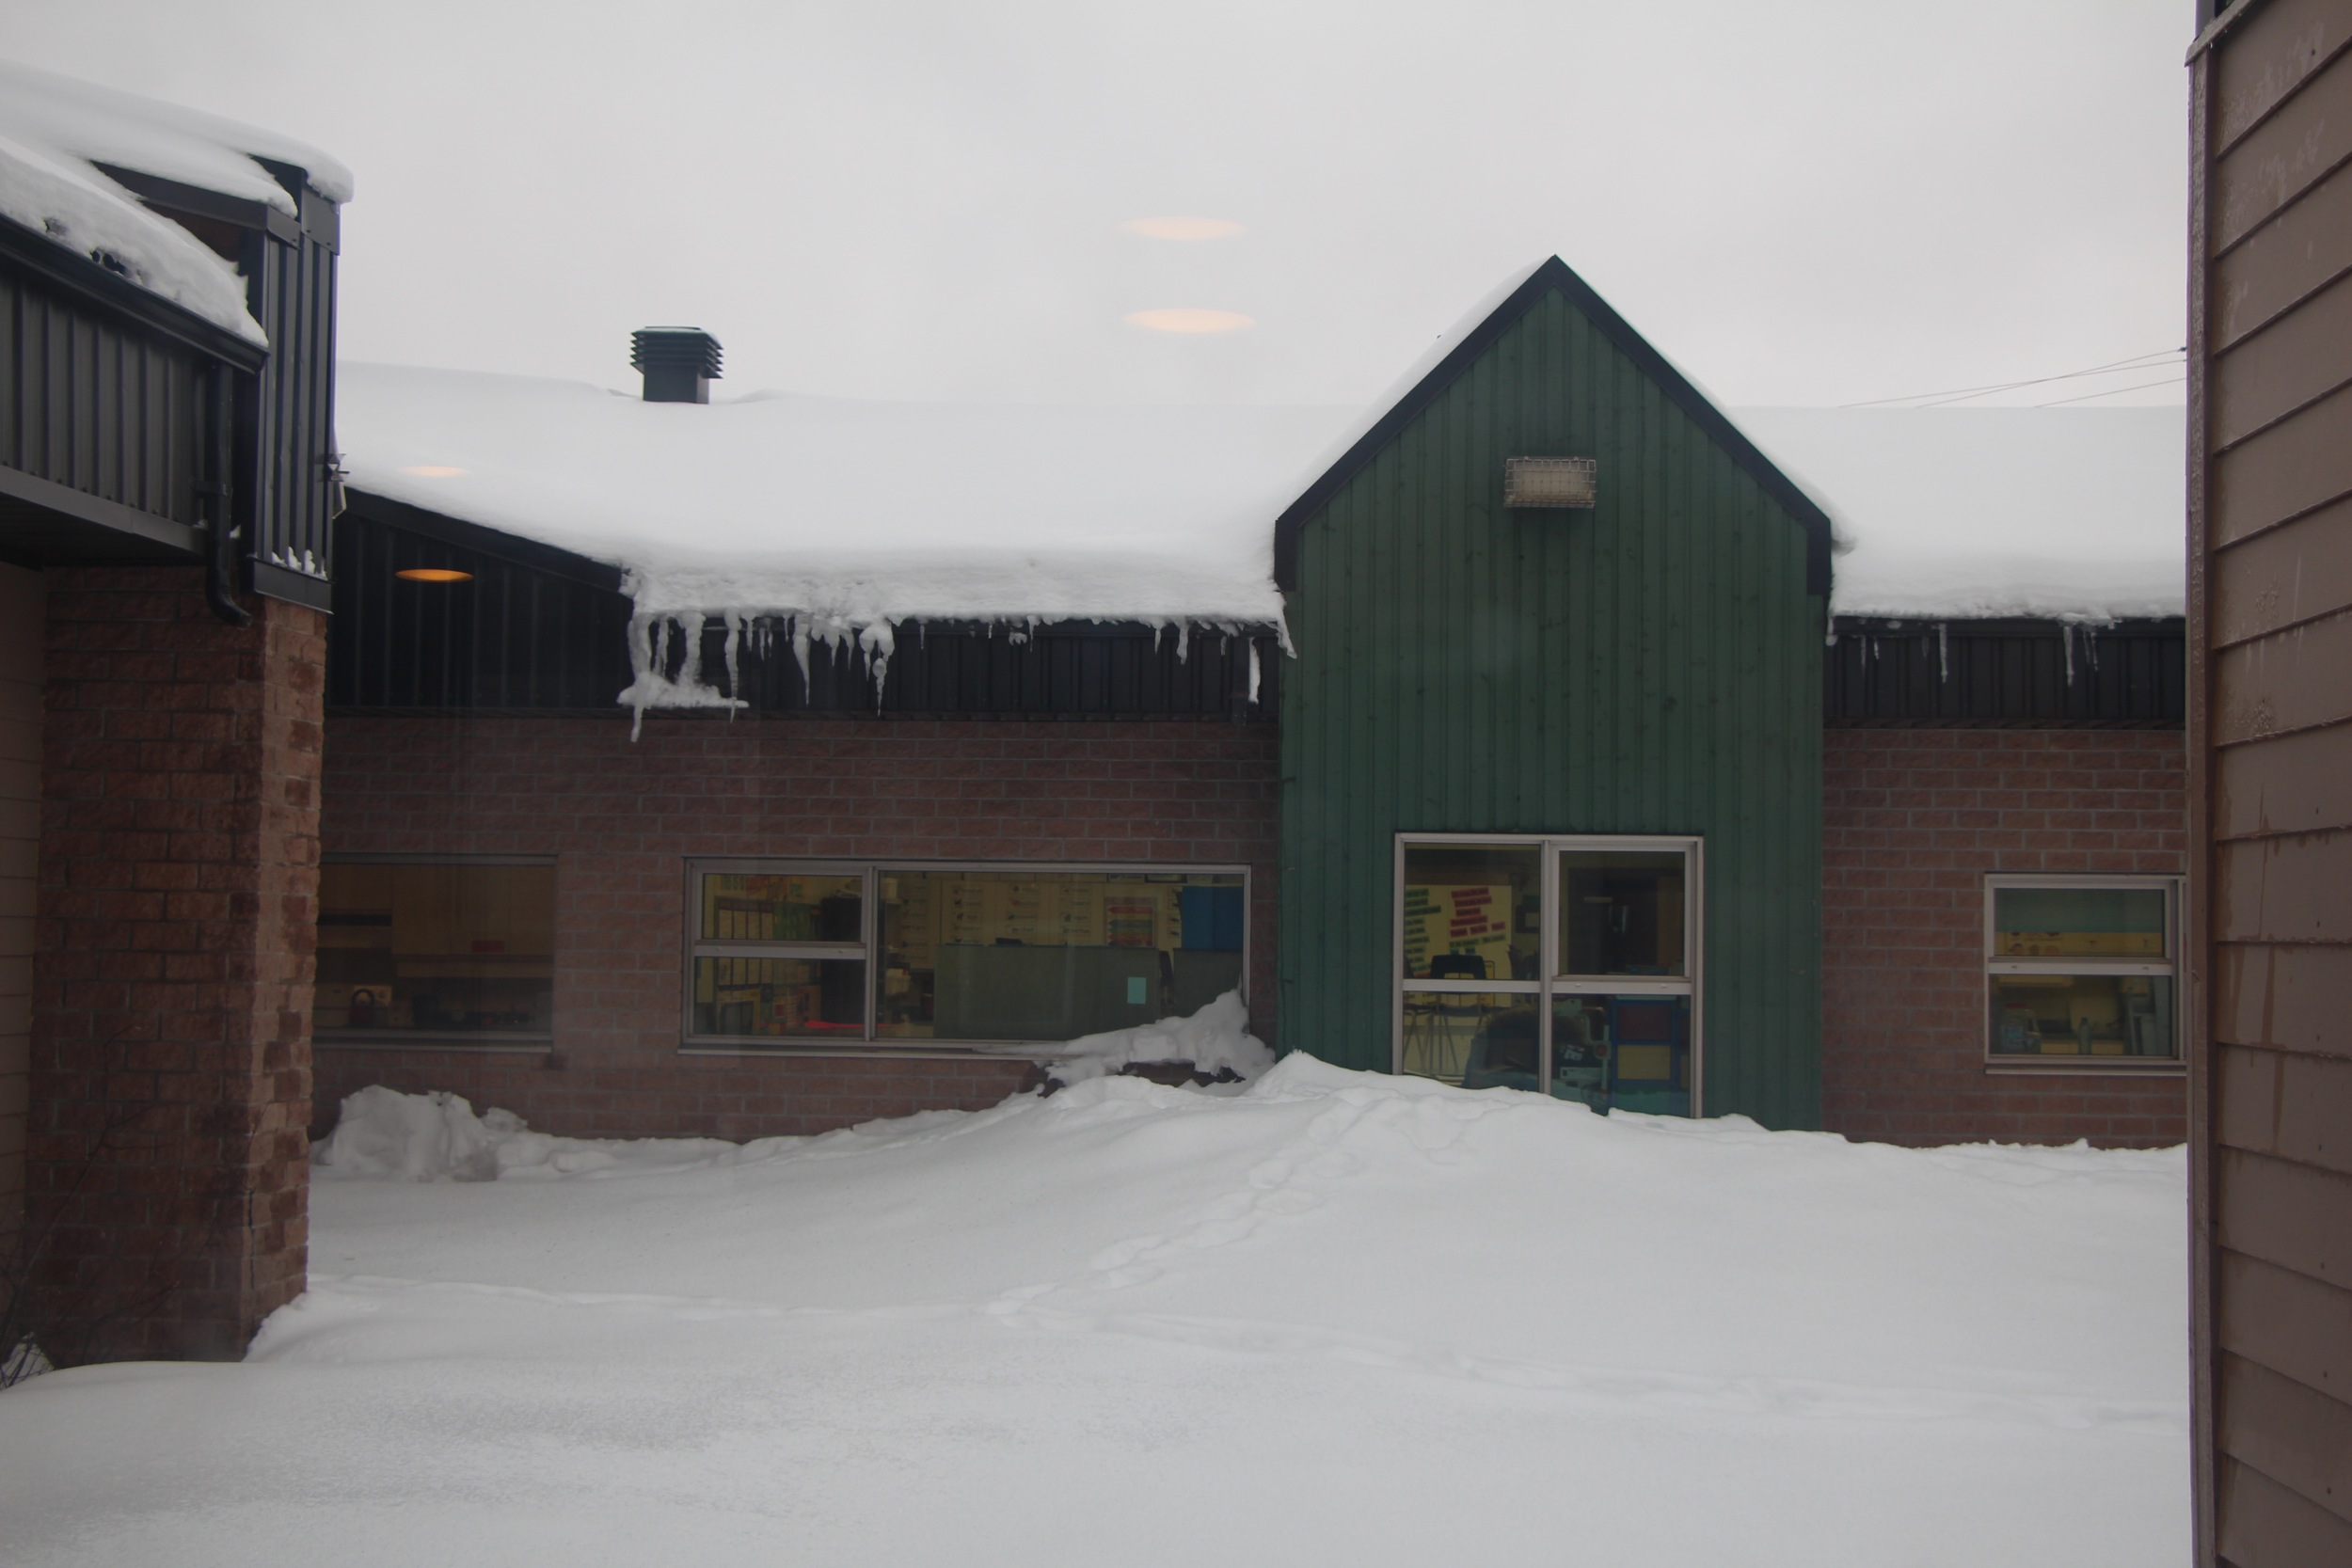 J.S.M.S has approximately 270 students. The school was built in 1985 after the North Eastern Quebec Agreement was signed. It is a pre-kindergarten to grade five school.